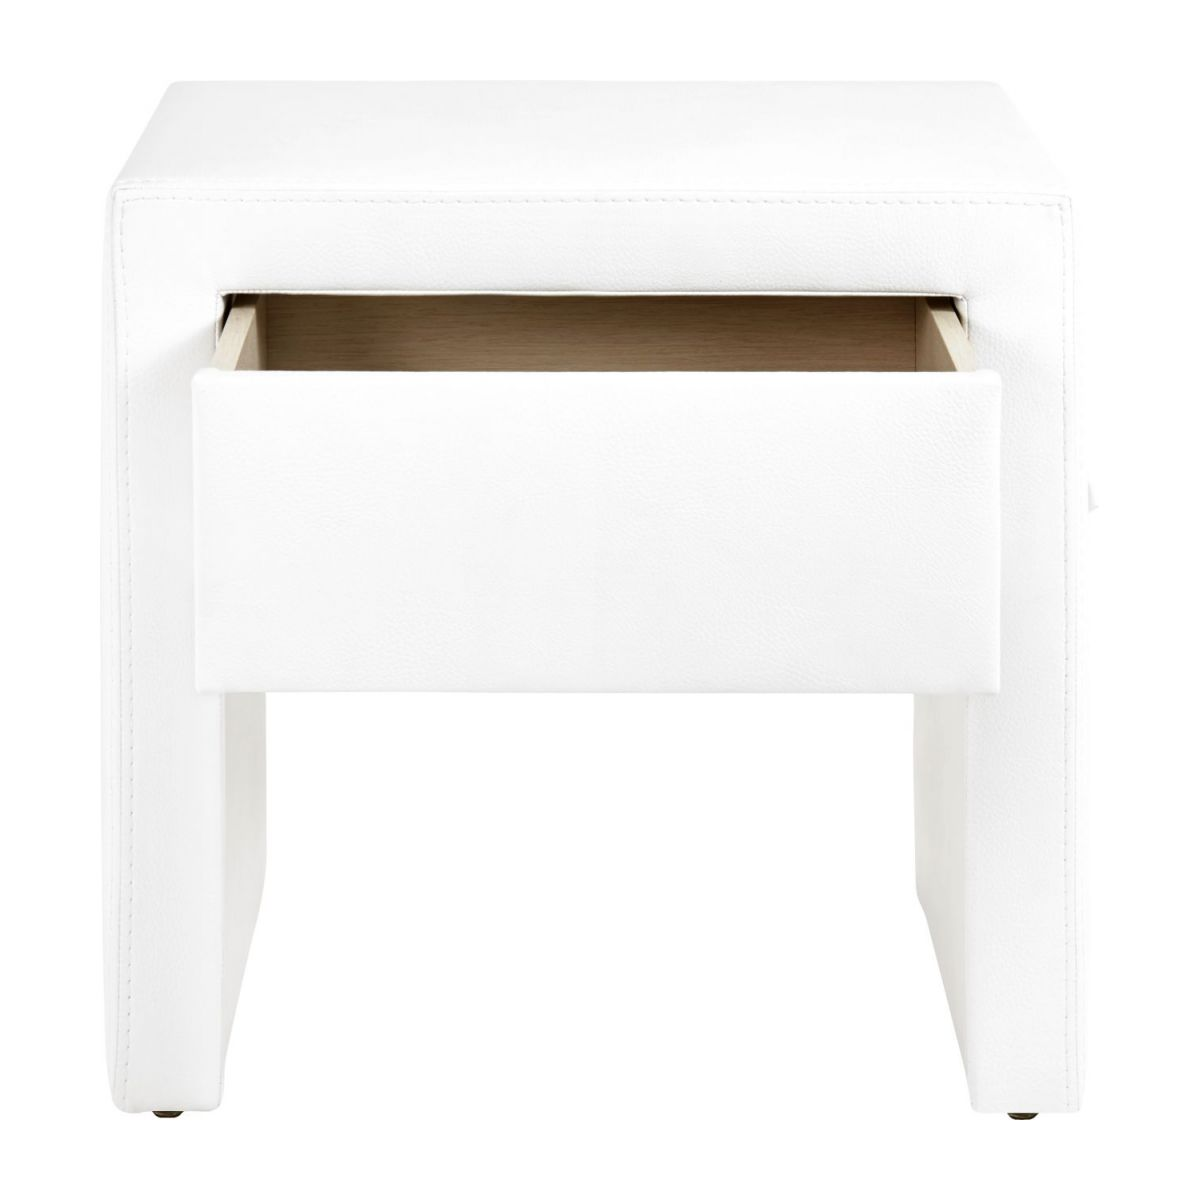 Table de chevet - Blanc n°3